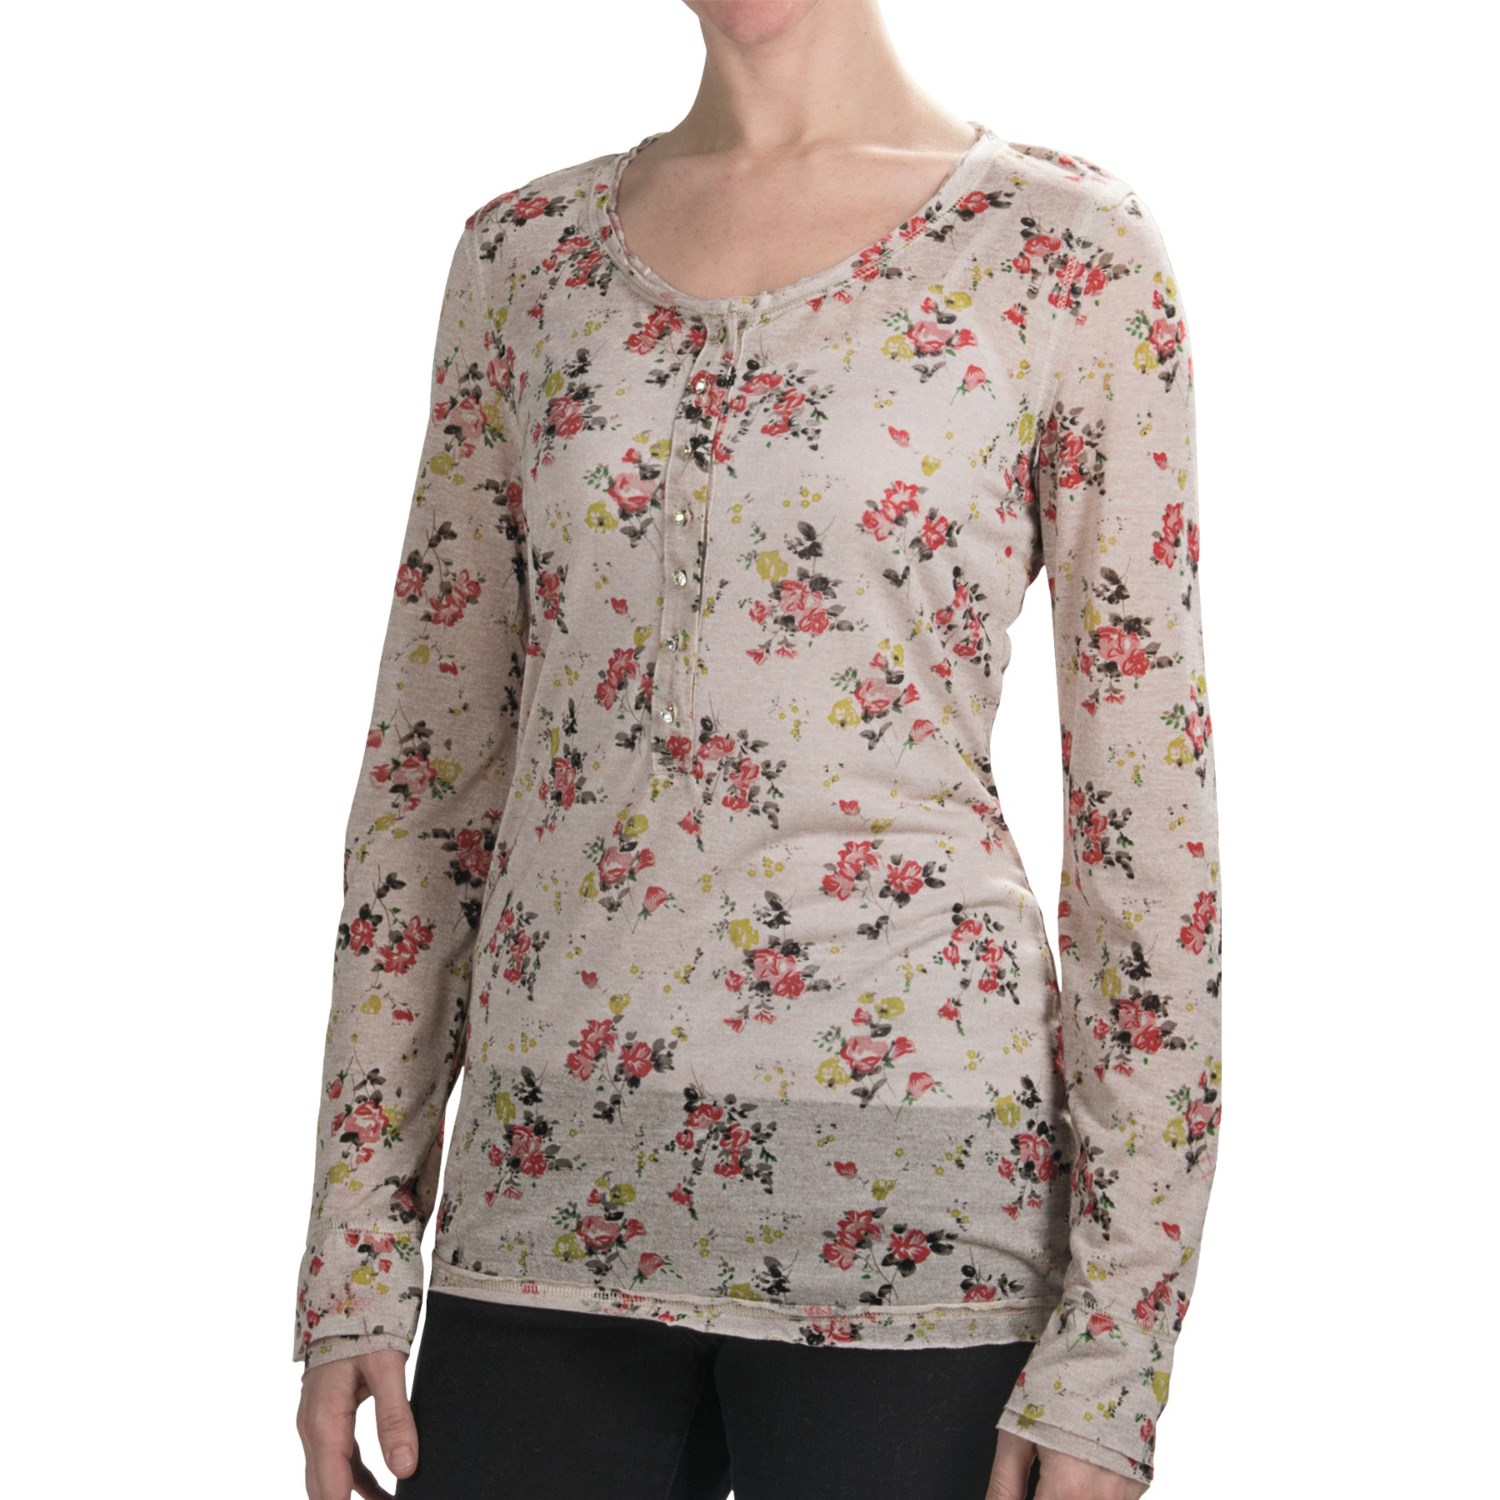 Vintage rhinestone cross long sleeve shirt